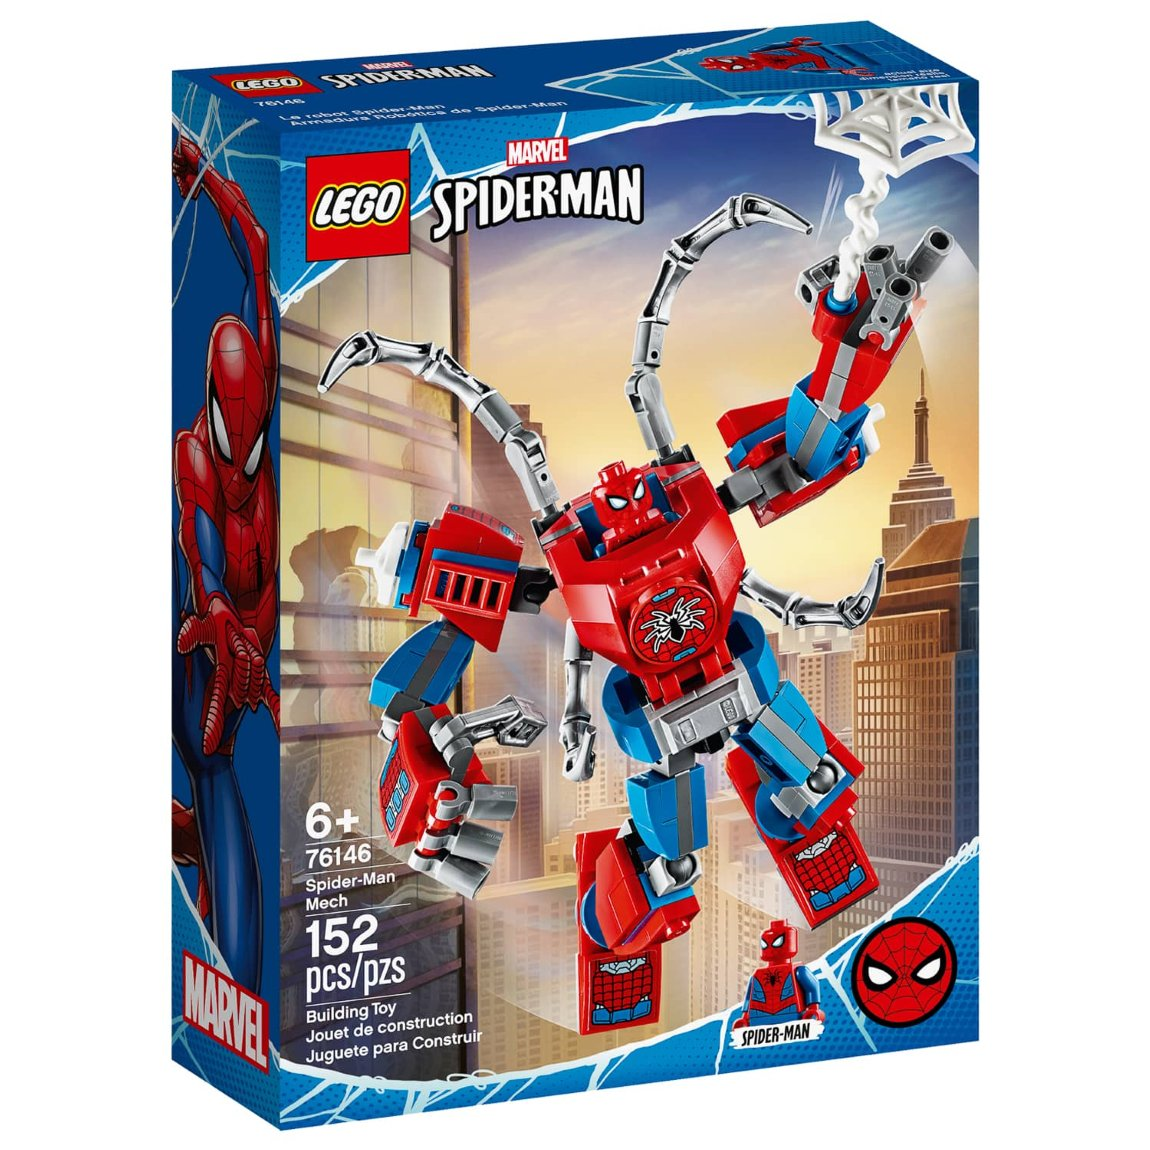 LEGO Marvel Spider-Man Mech From B&M Toys